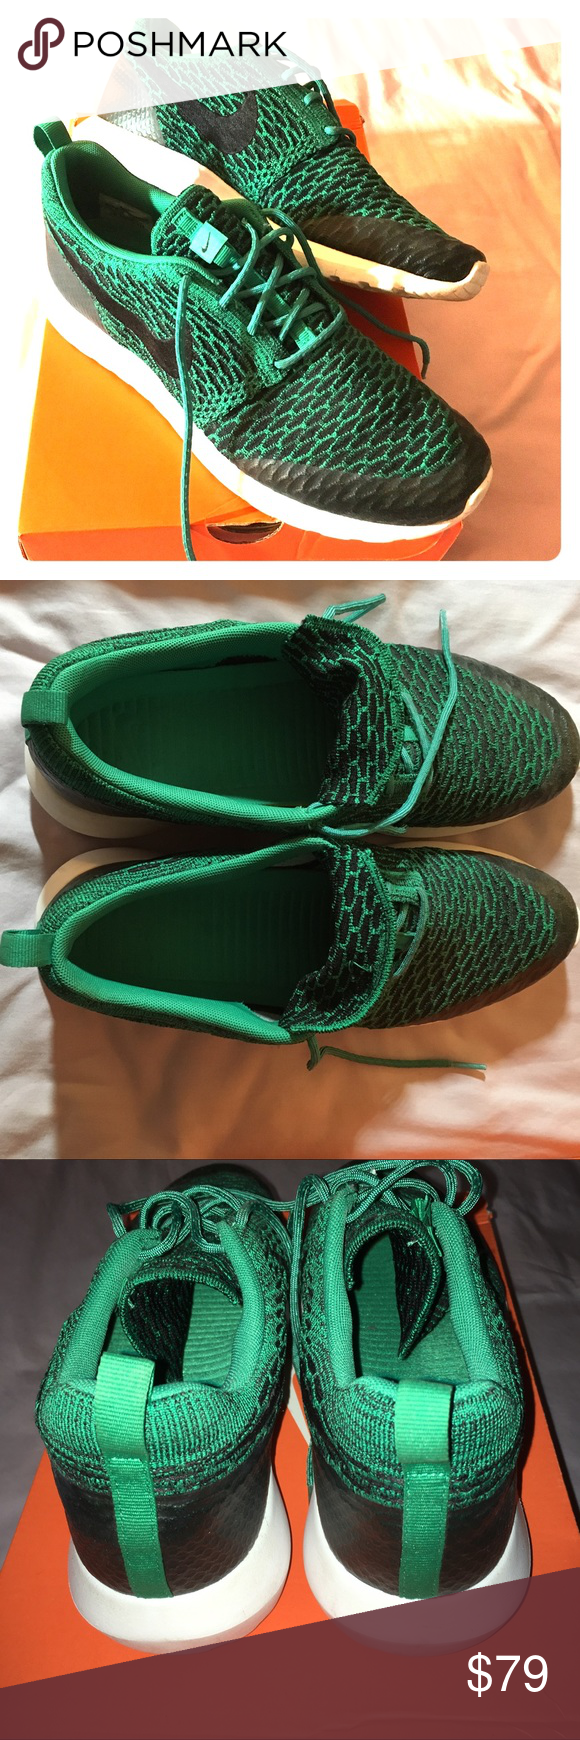 fb3671004468 ☘️NIKE Roshe One NM Flyknit Lucid Green Men 10 EUC Awesomely comfortable Nike  Flyknit sneaker. Very clean only worn a couple times. Men s size 10 or ...